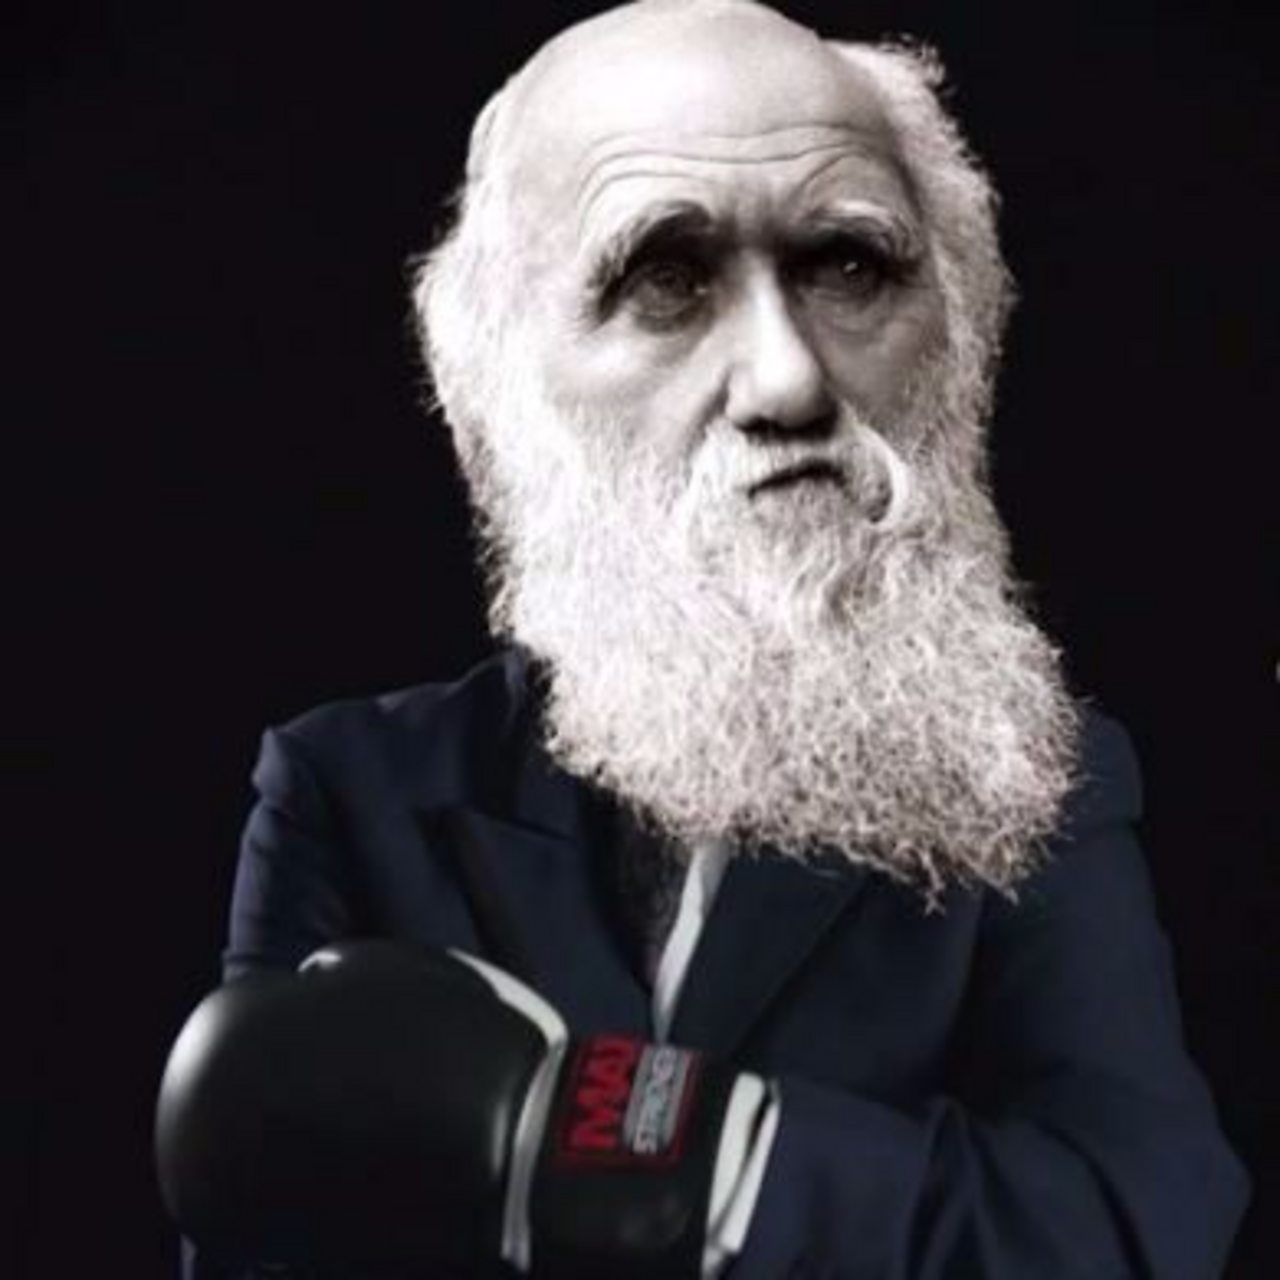 Charles Darwin - creator of the theory of evolution by natural selection